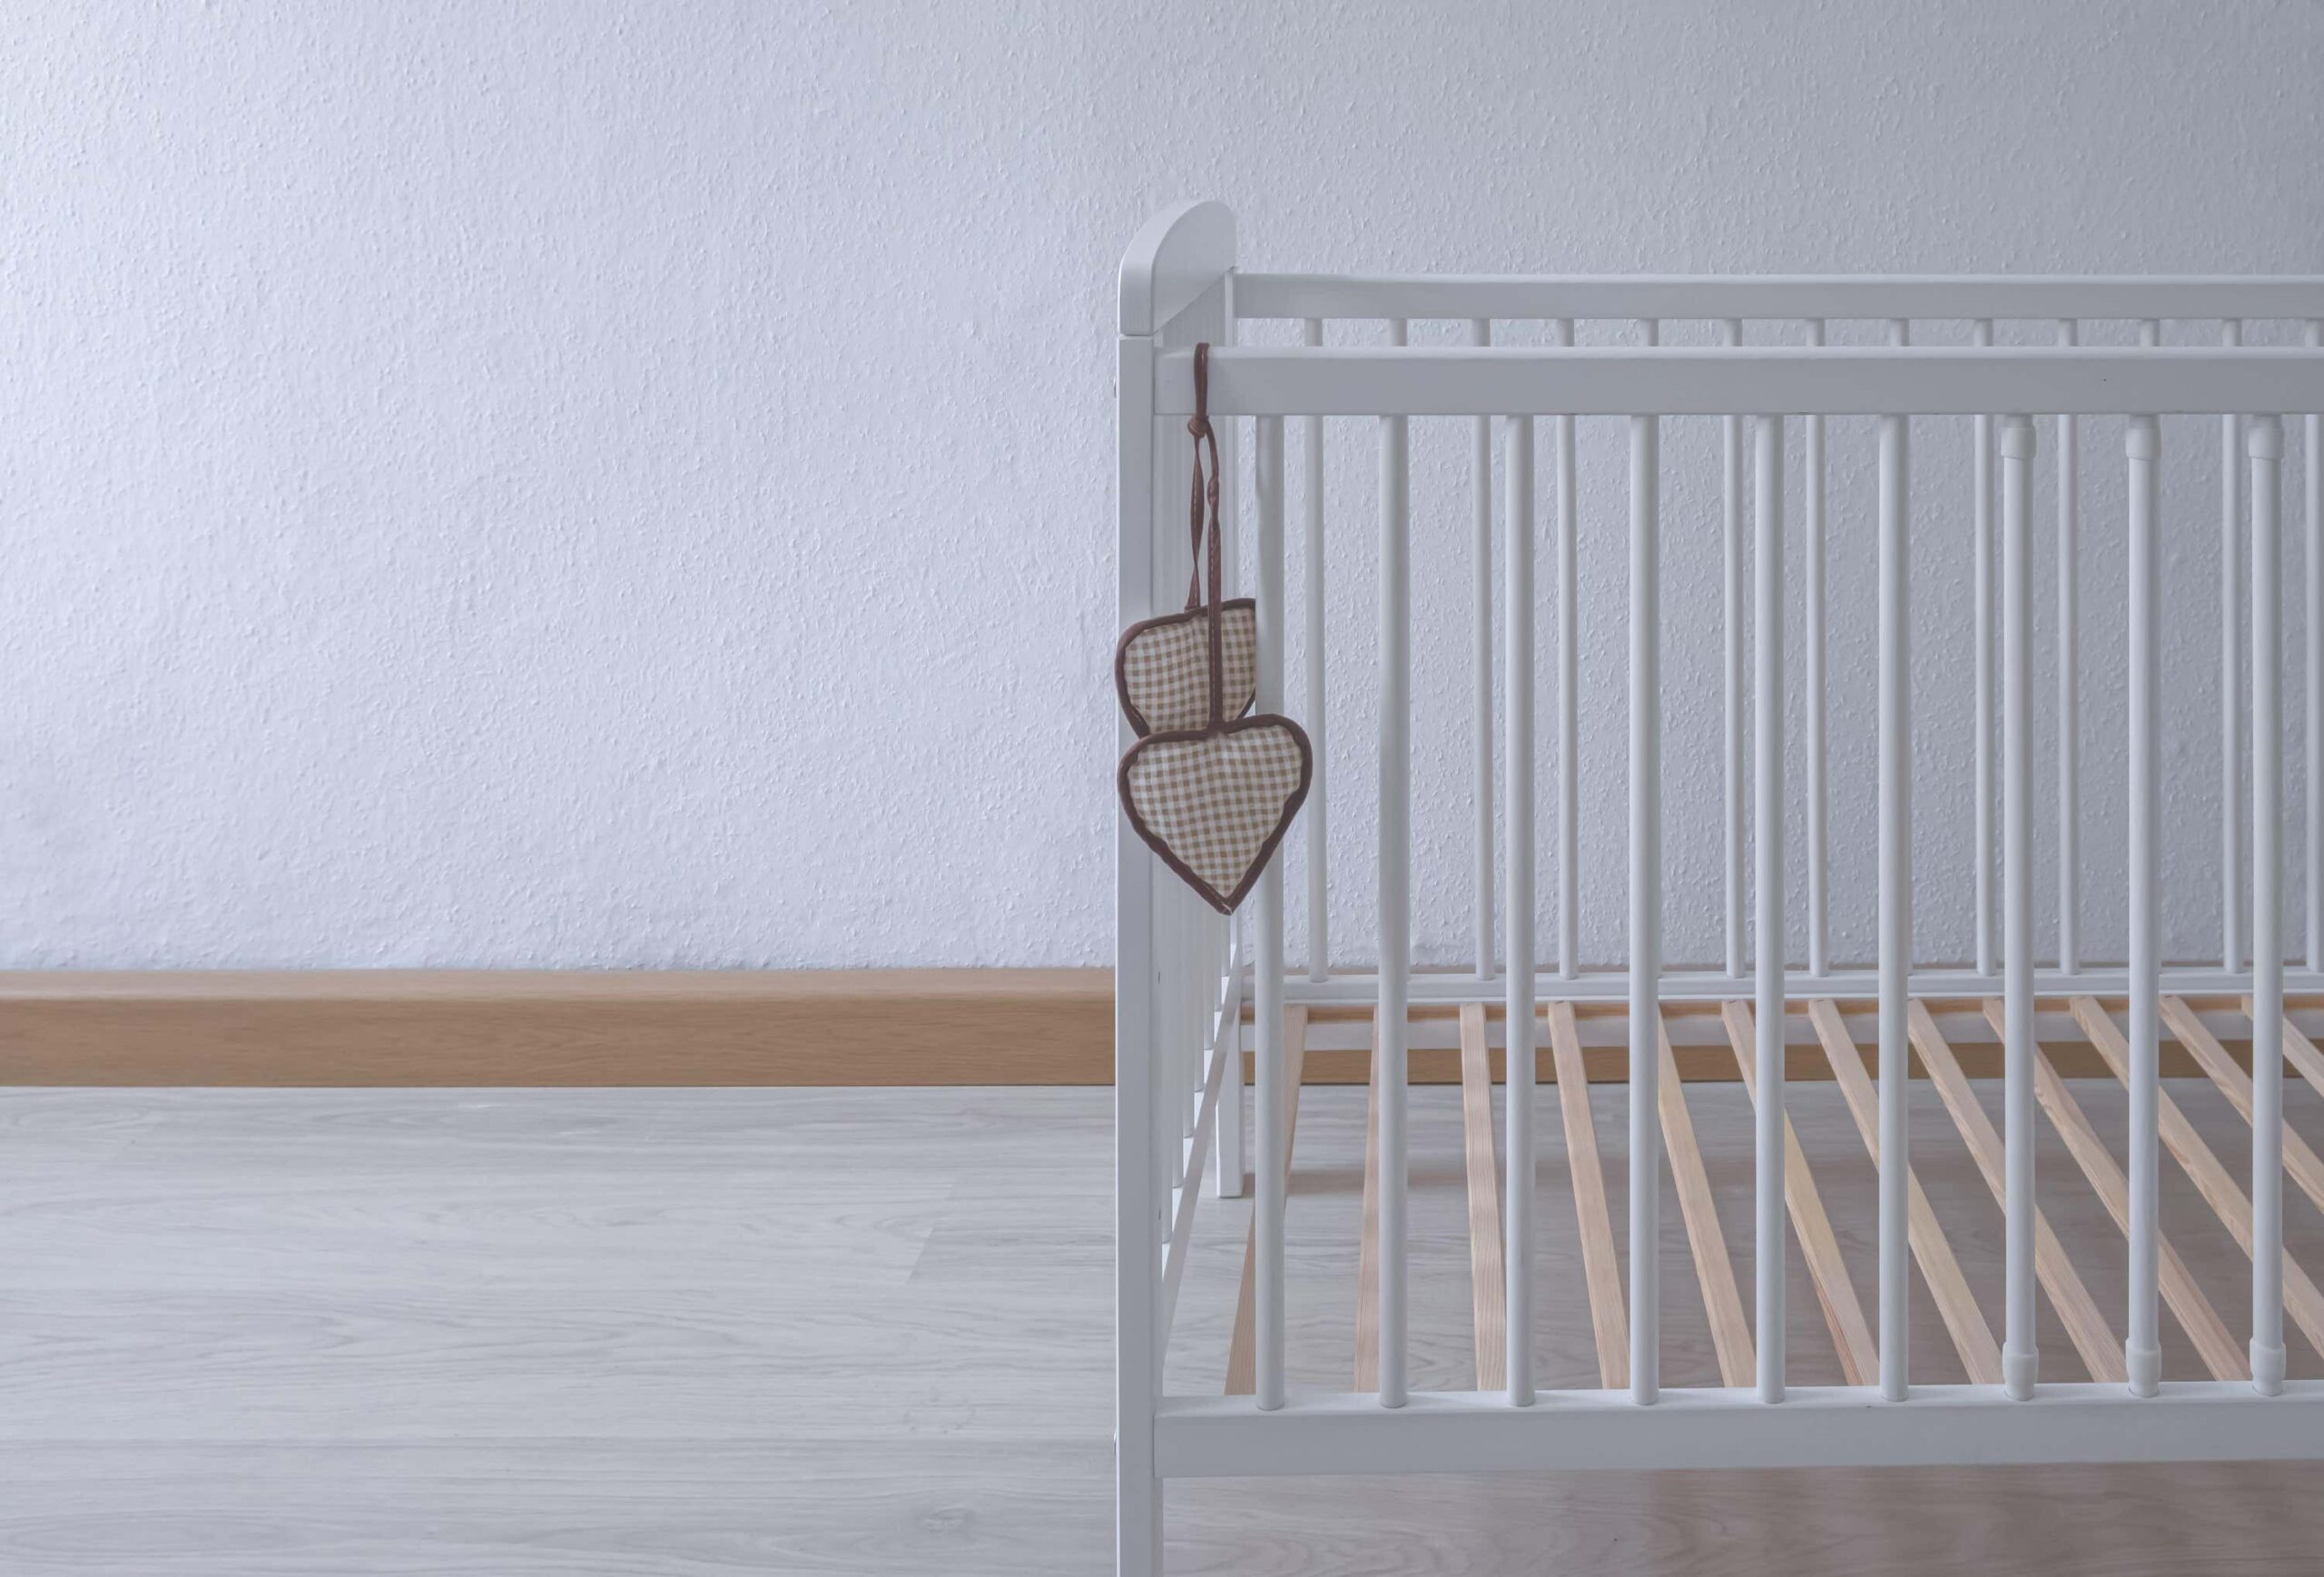 How Do We Support Our Son And Daughter-in-Law After Our Grandchild's Cot Death